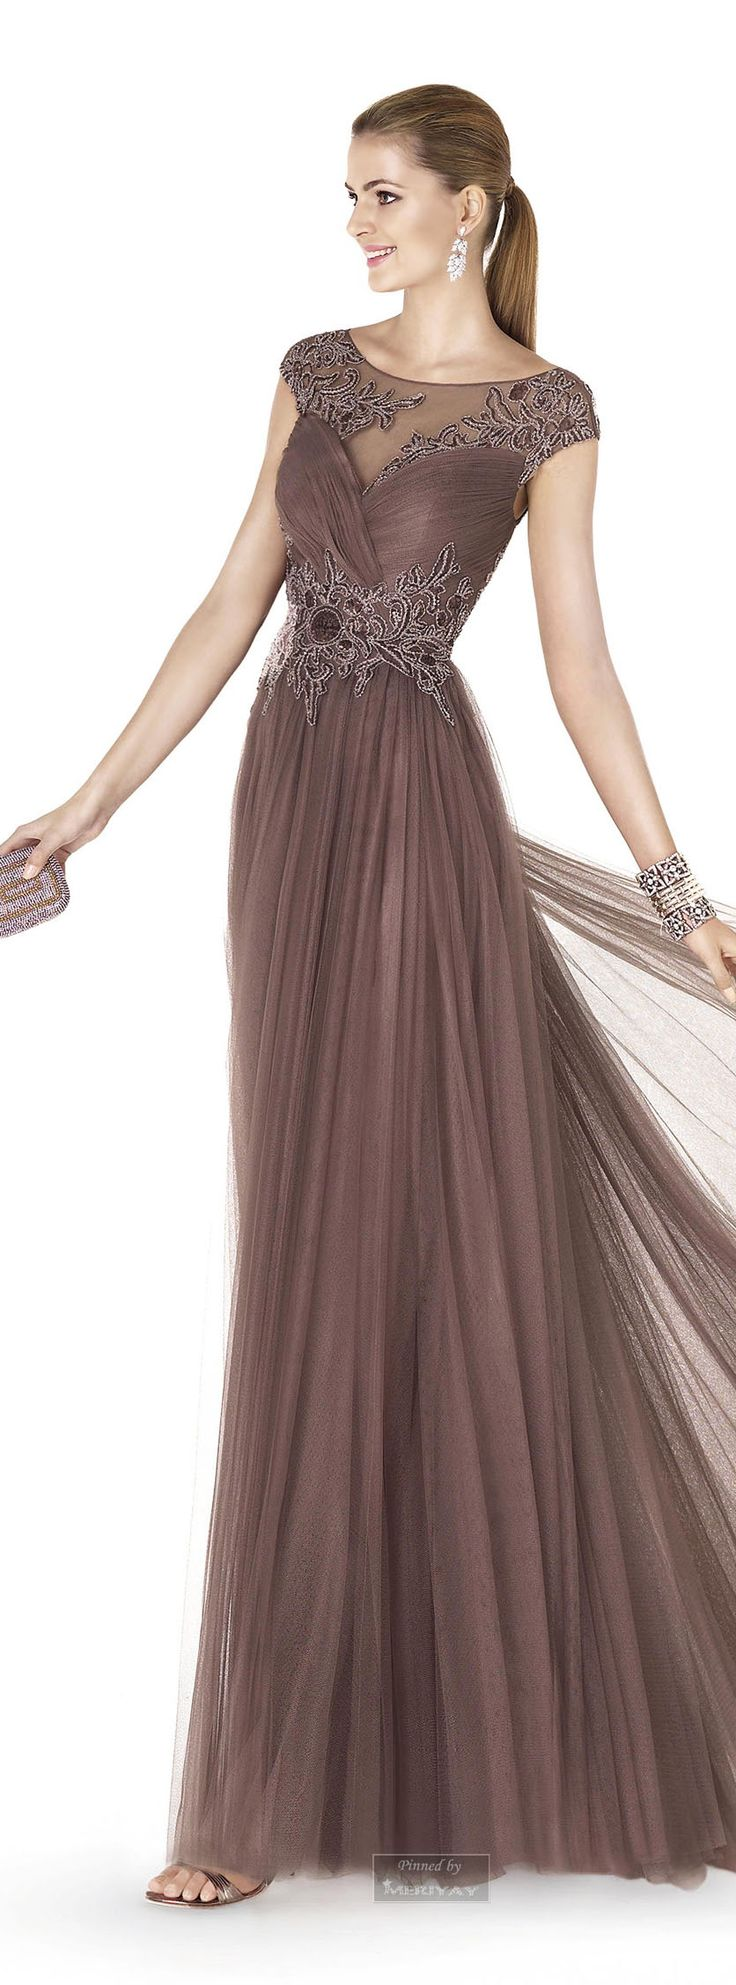 Mocha Chiffon Pleated Skirt Gown w Embroidered Bodice & Waist Details 2015